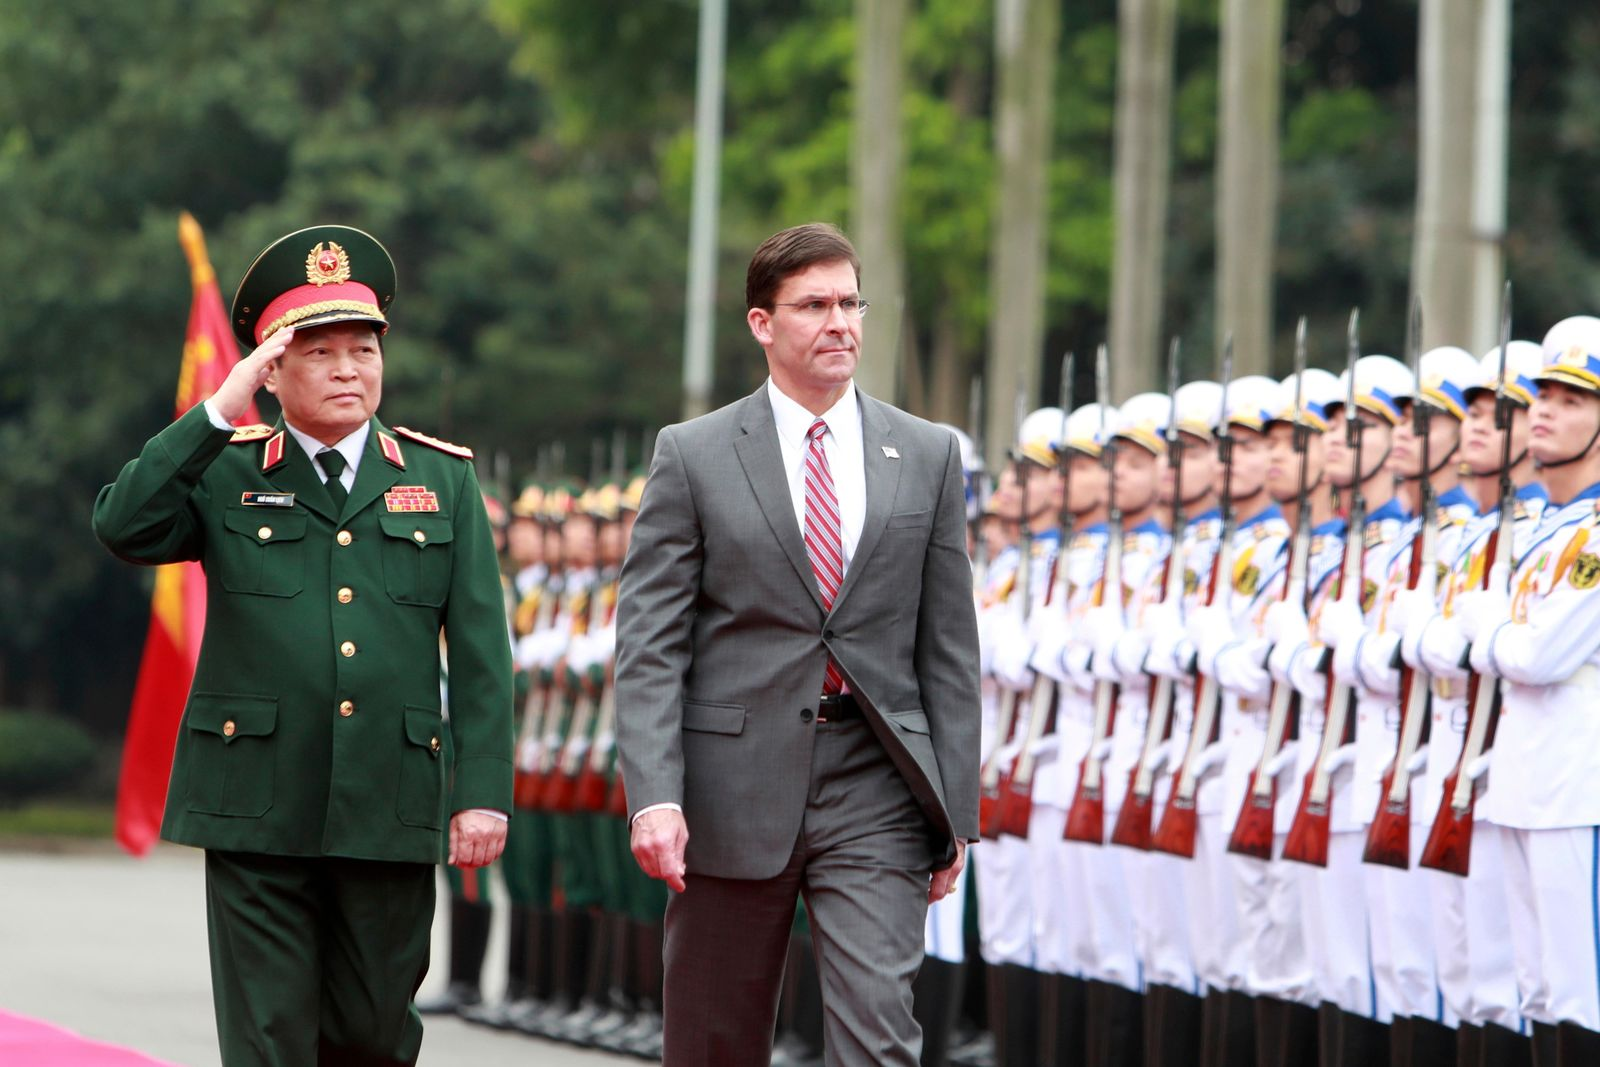 U.S. SDefense Secretary Mark Esper, right, and Vietnamese Defense Minister Ngo Xuan Lich review an honor guard in Hanoi, Vietnam on Wednesday, Nov. 20, 2019. (AP Photo/Hau Dinh)